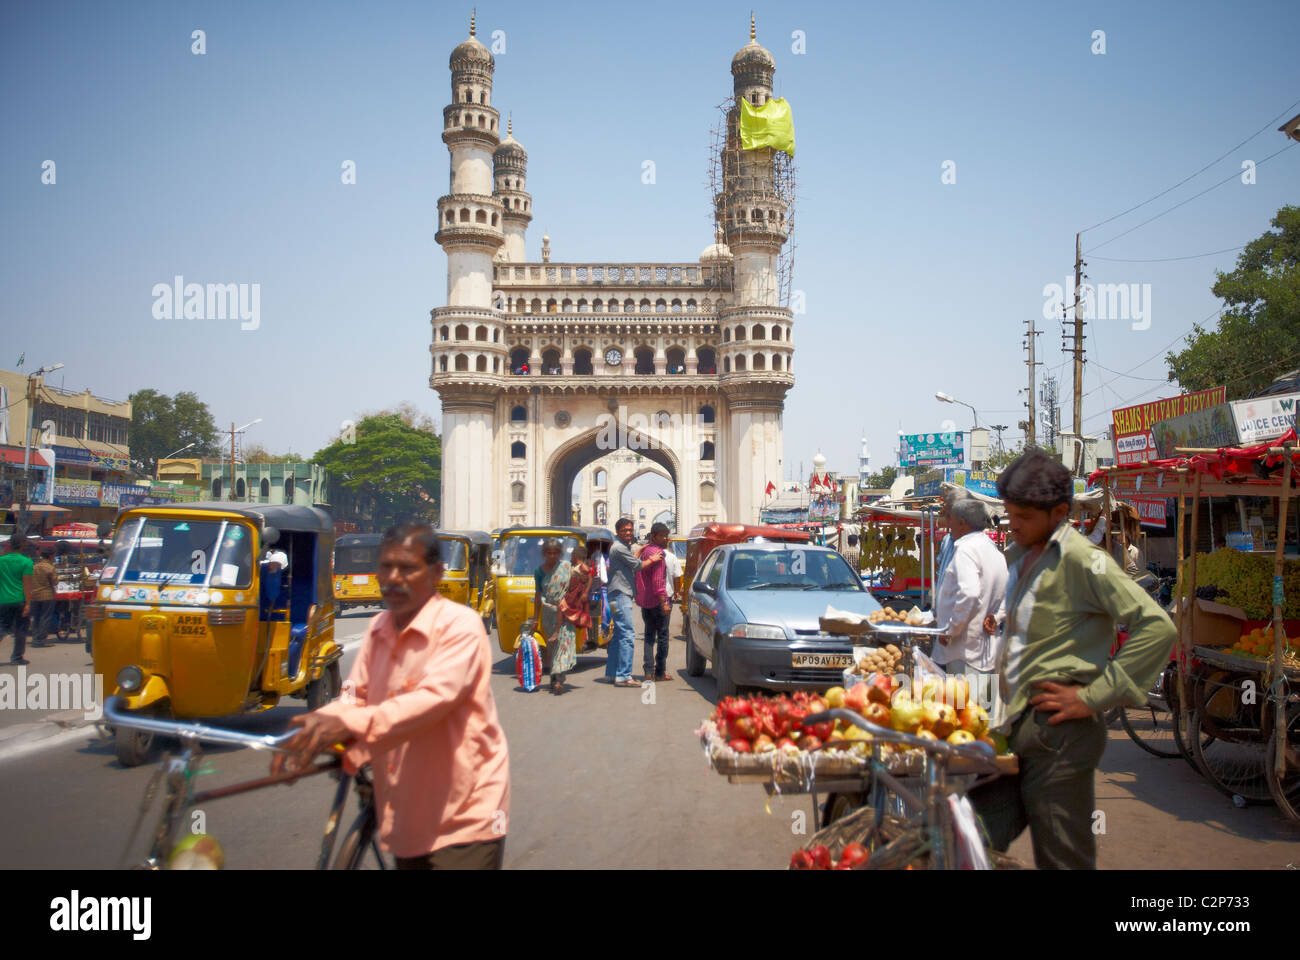 India, Hyderabad, development, growth, business, colour, color, vibrant, street, new, old, Holi, finance, money, Stock Photo